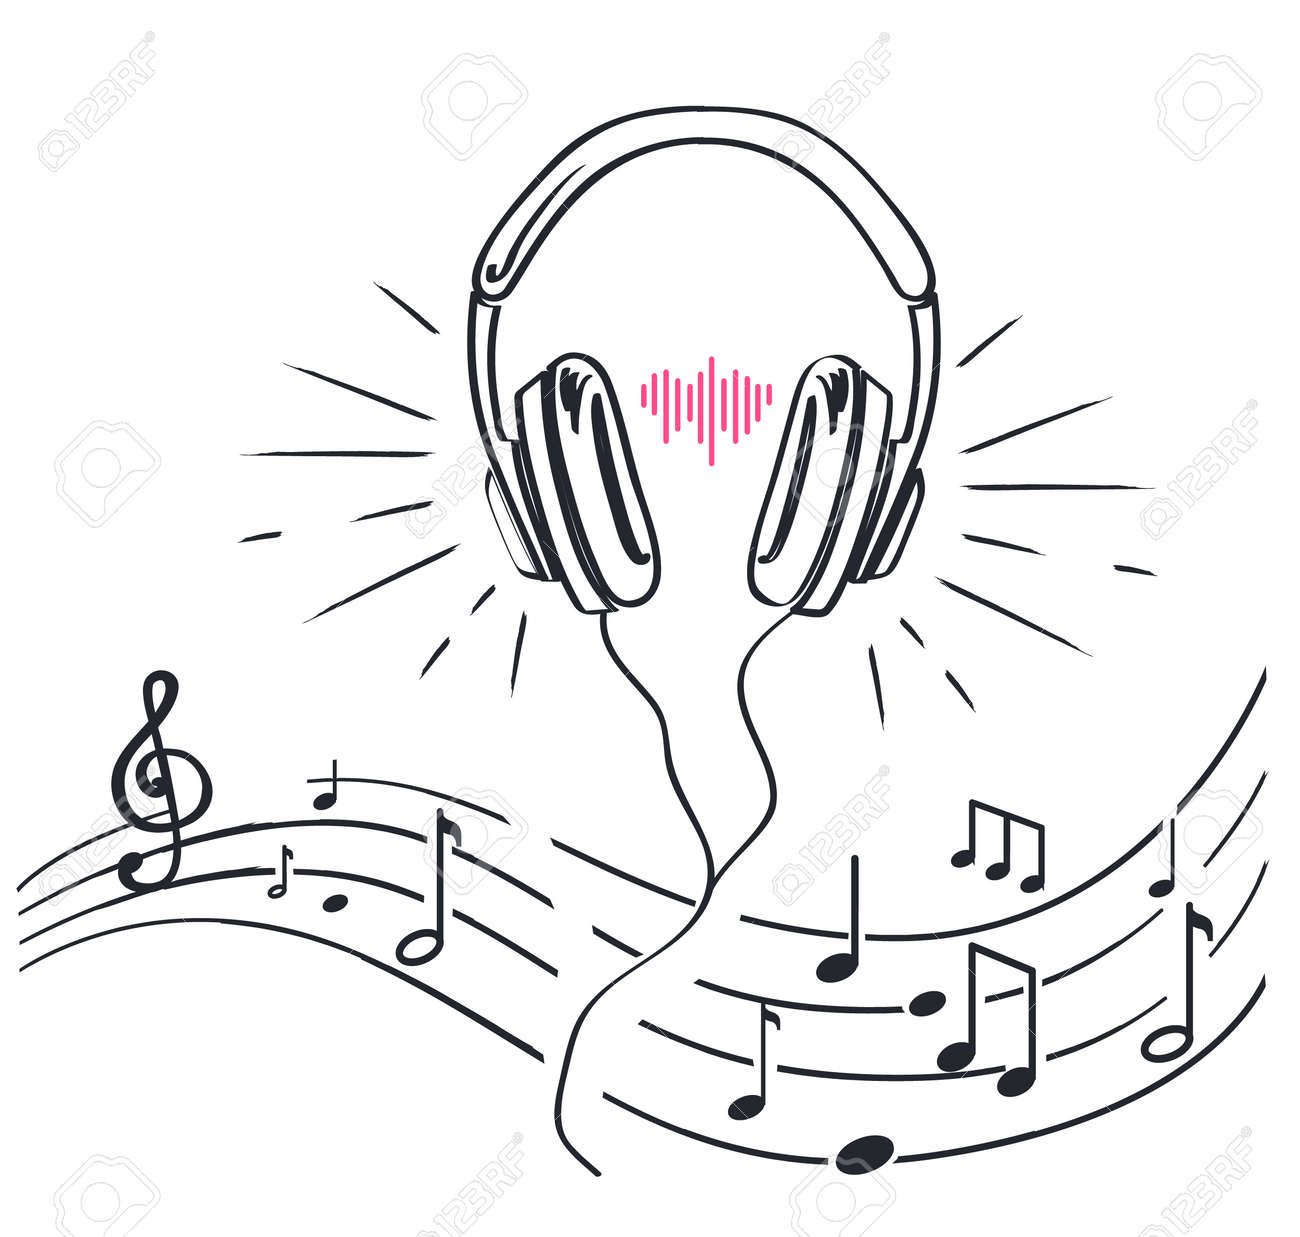 Headphones and sheet music with notes monochrome sketches outline isolated vector line art headset